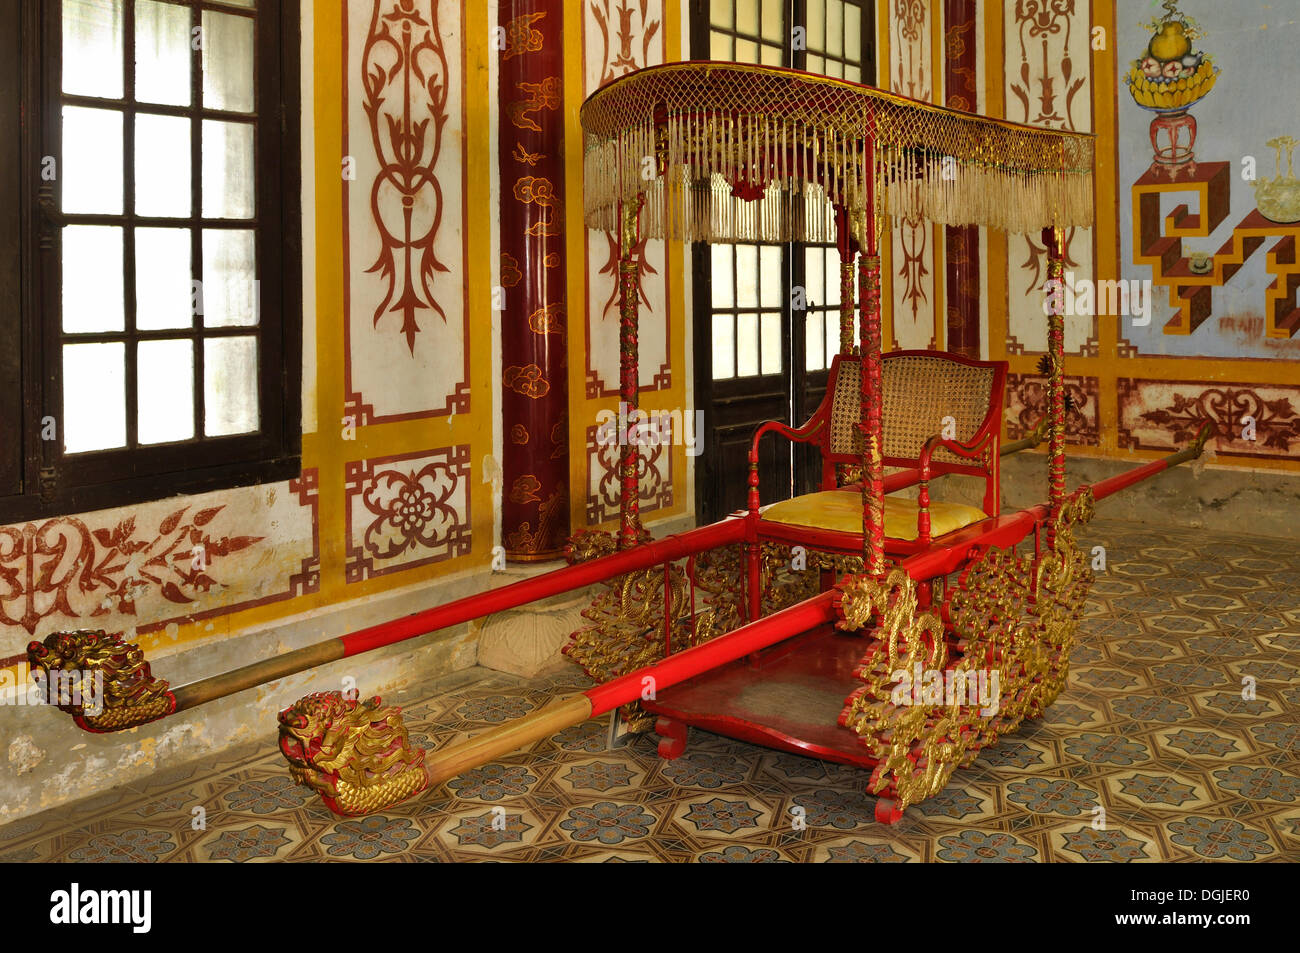 The Emperor's litter or sedan in the citadel, Mandarin halls, Hoang Thanh Imperial Palace, Forbidden City, Hue - Stock Image